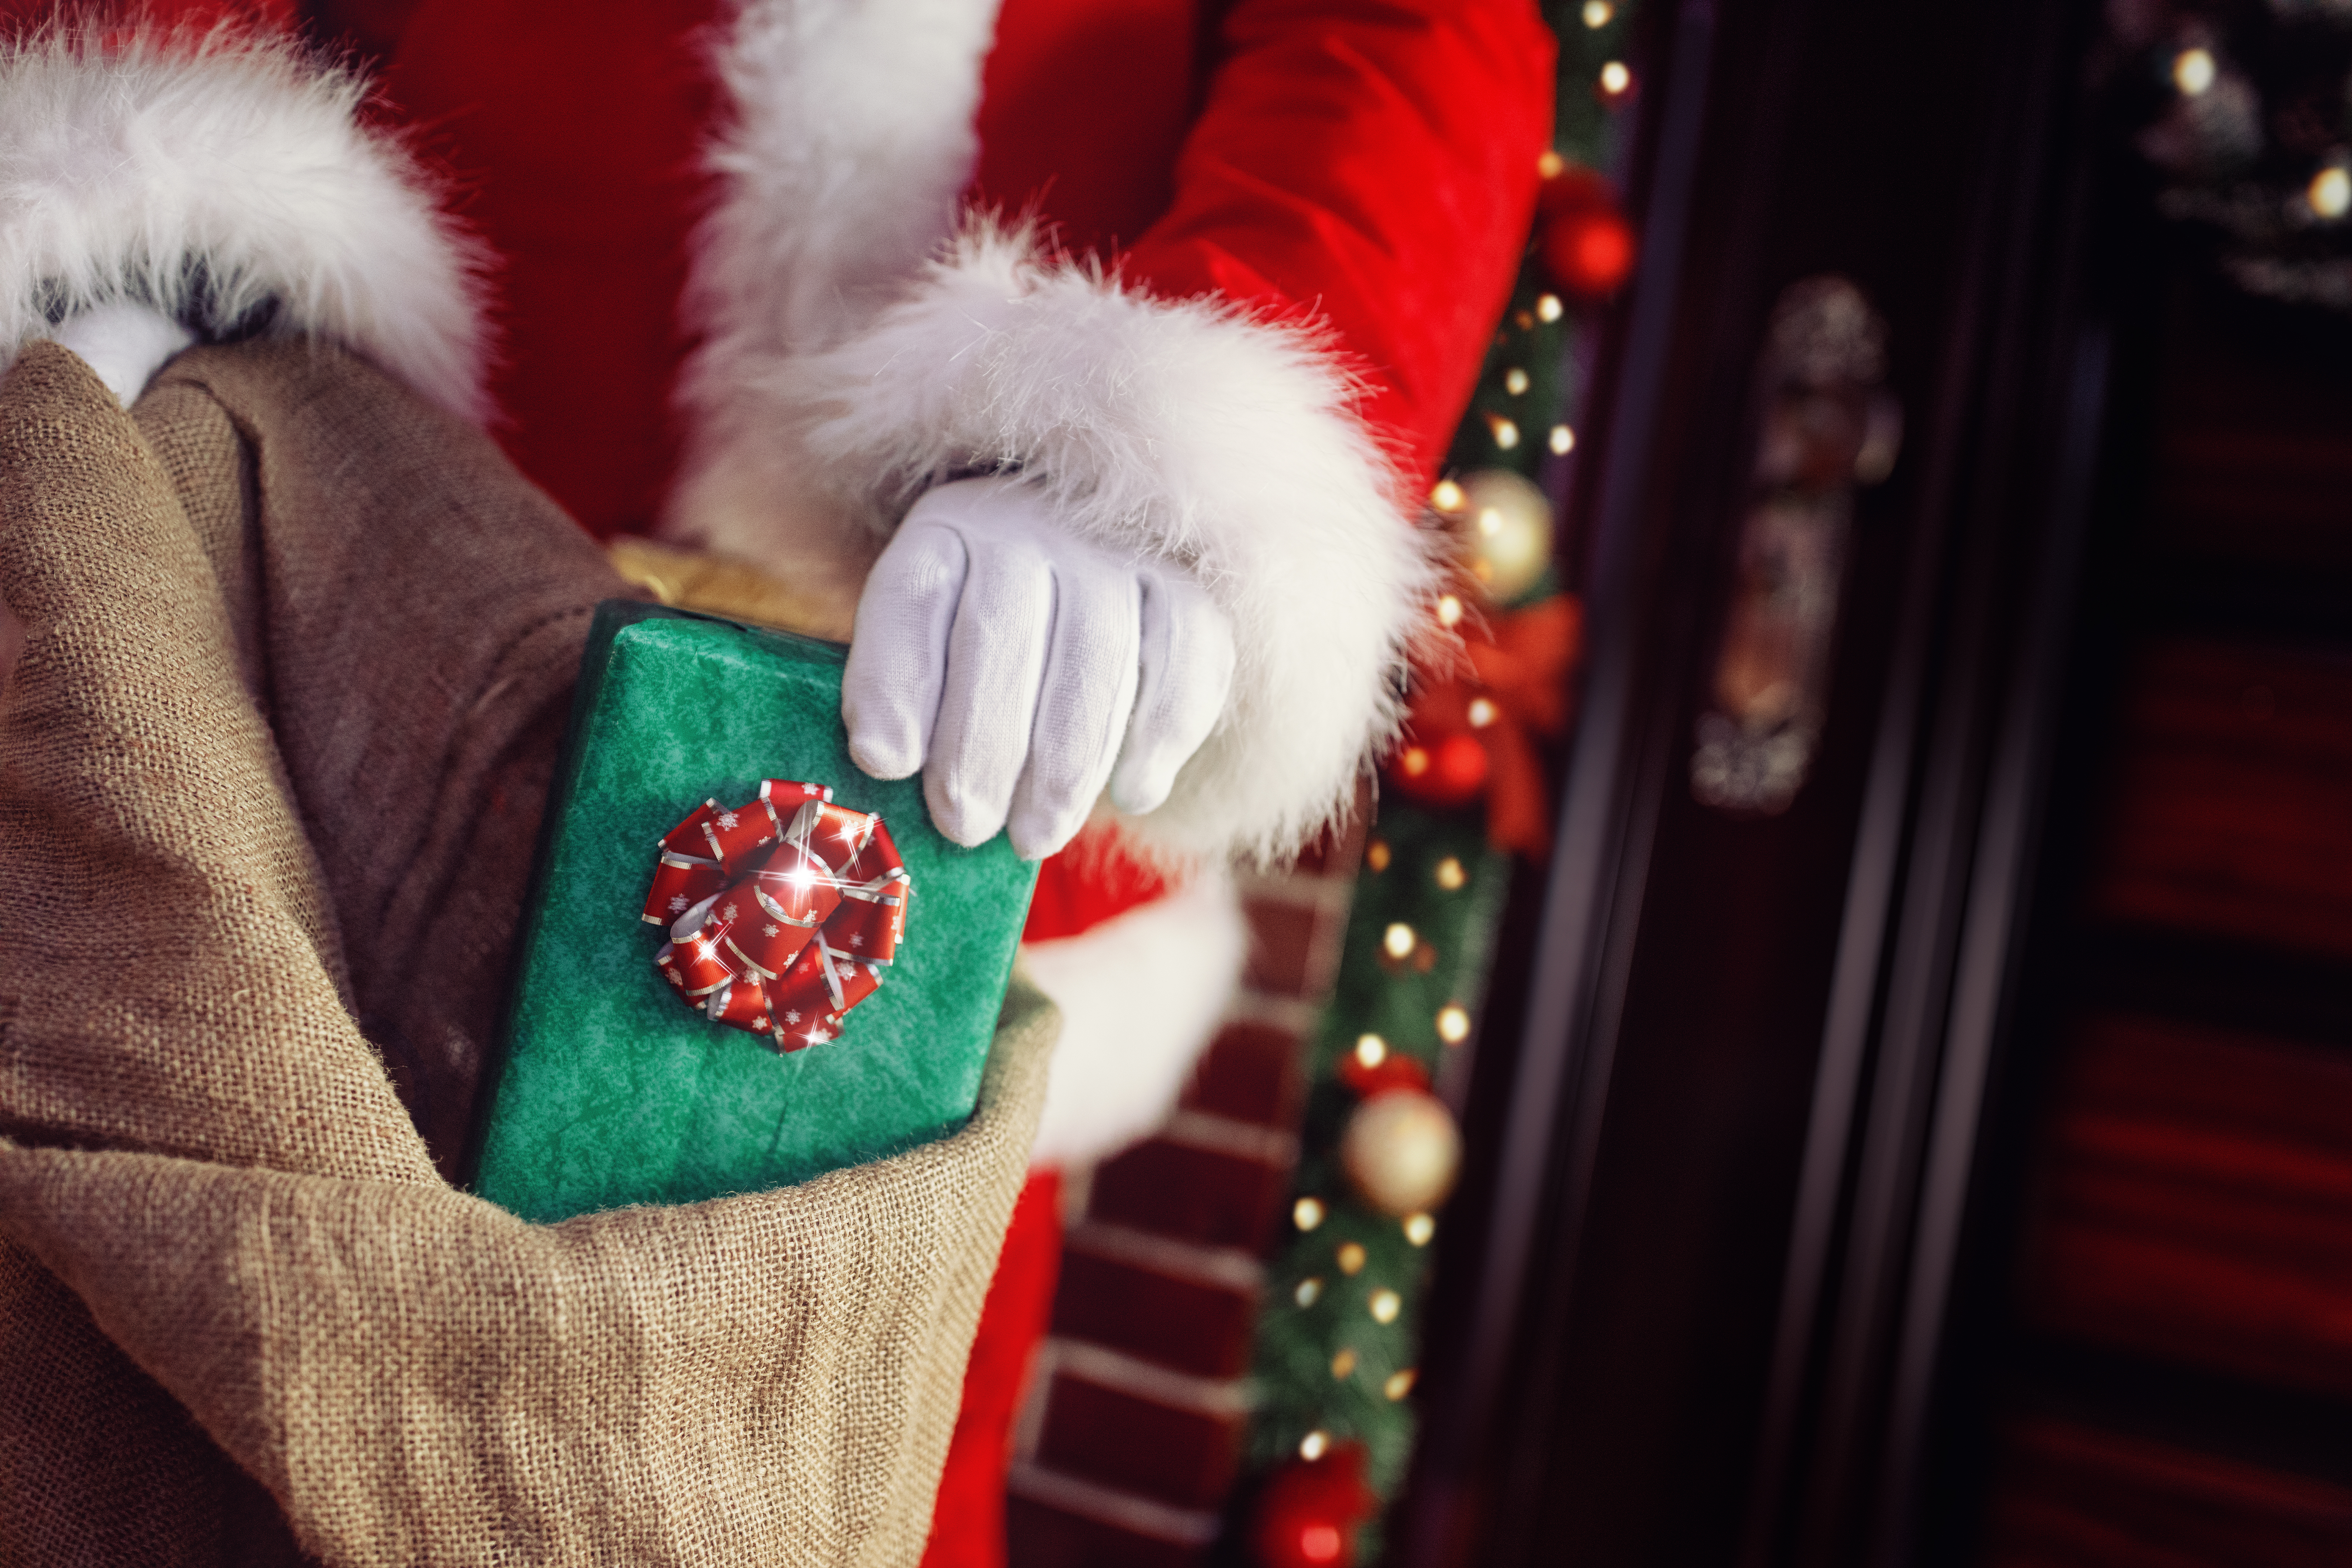 Christian HCSM Teams Up with California-Based Charity to Fulfill Christmas Wishes of Local Families in Need